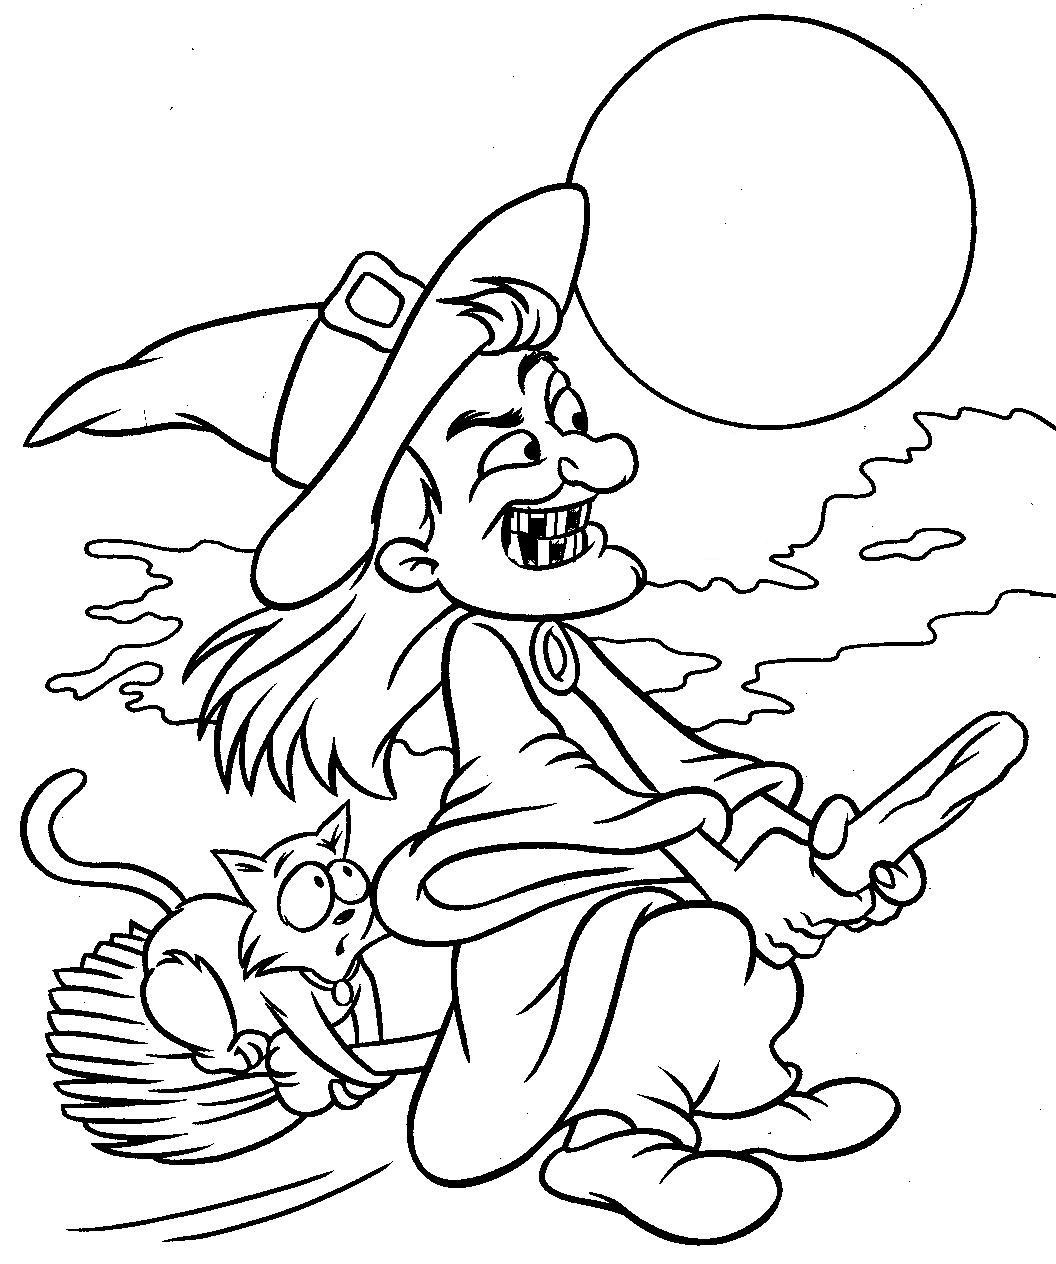 Colouring in sheets for halloween - Hallloween Coloring Page Sheet